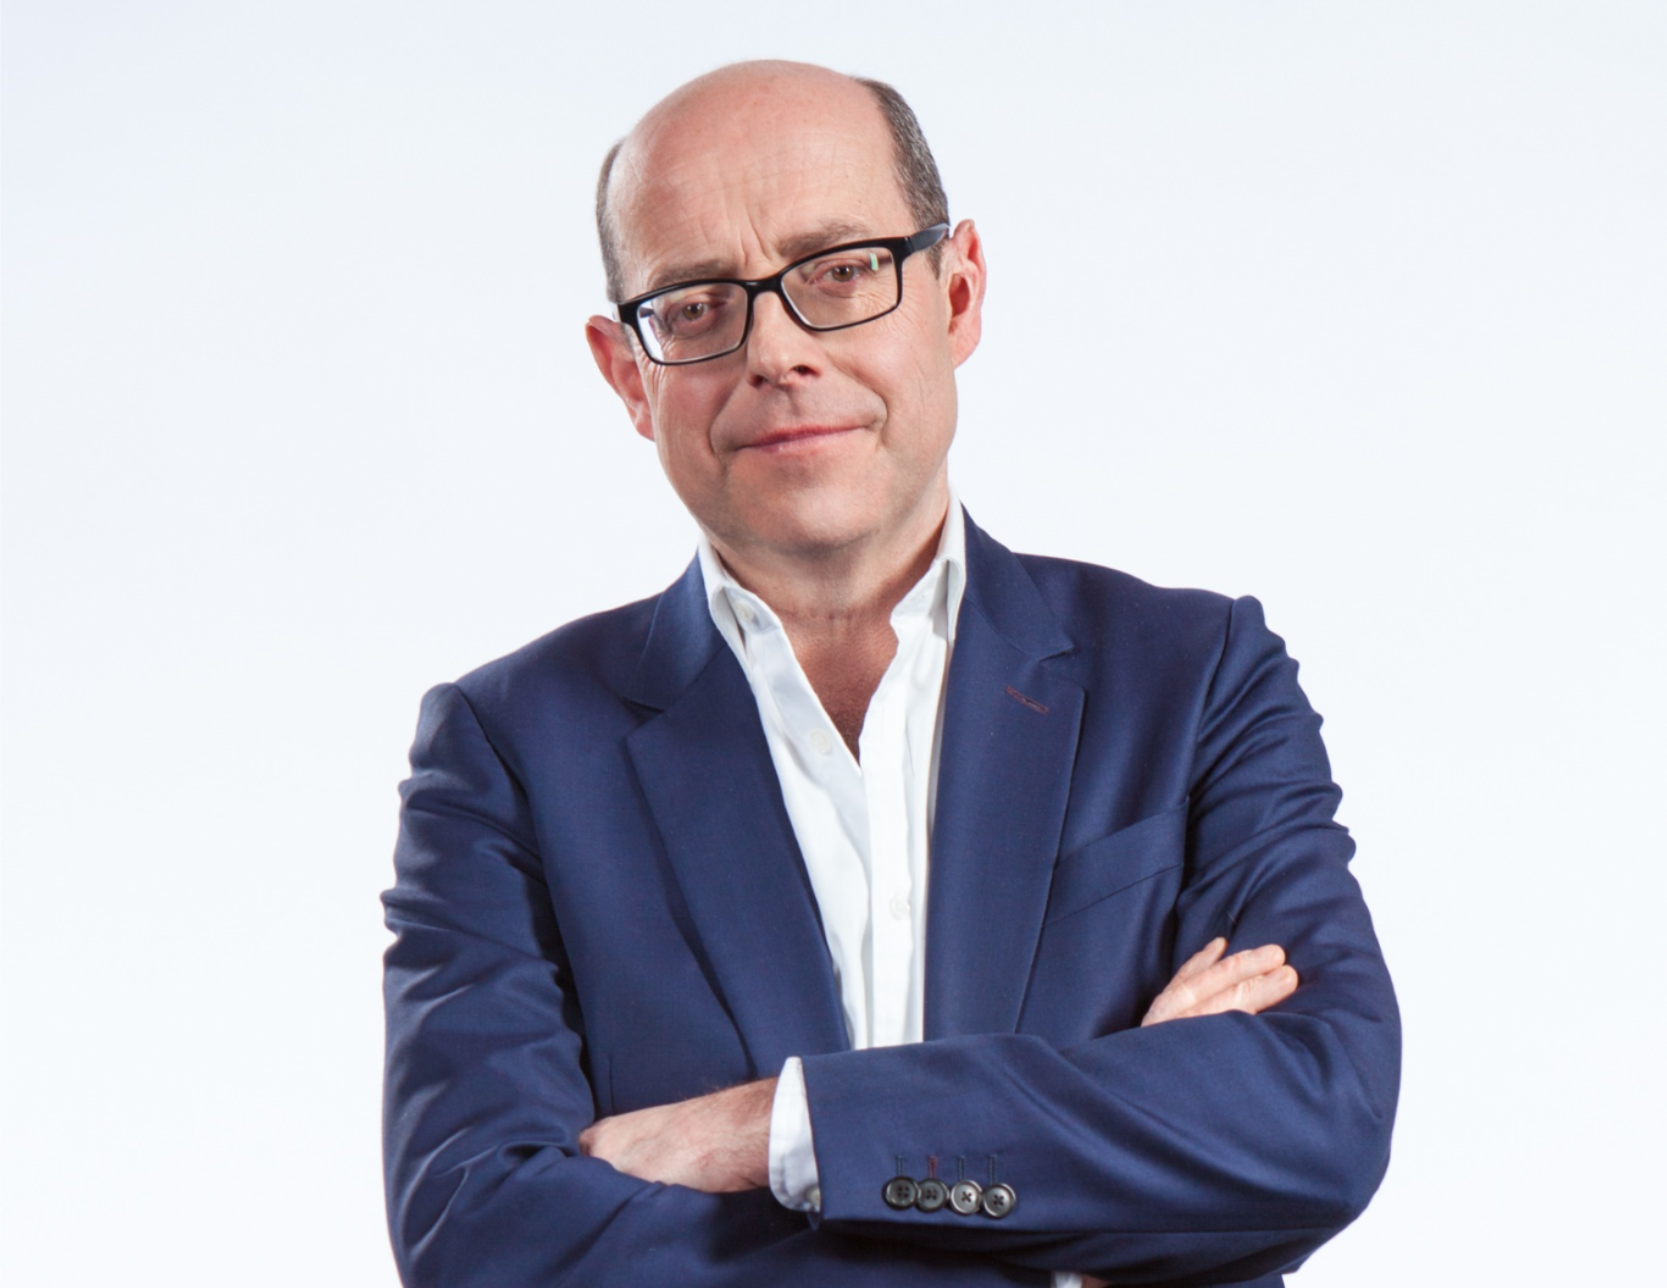 Nick Robinson, Reflections on 25 years in the front seat of British Politics